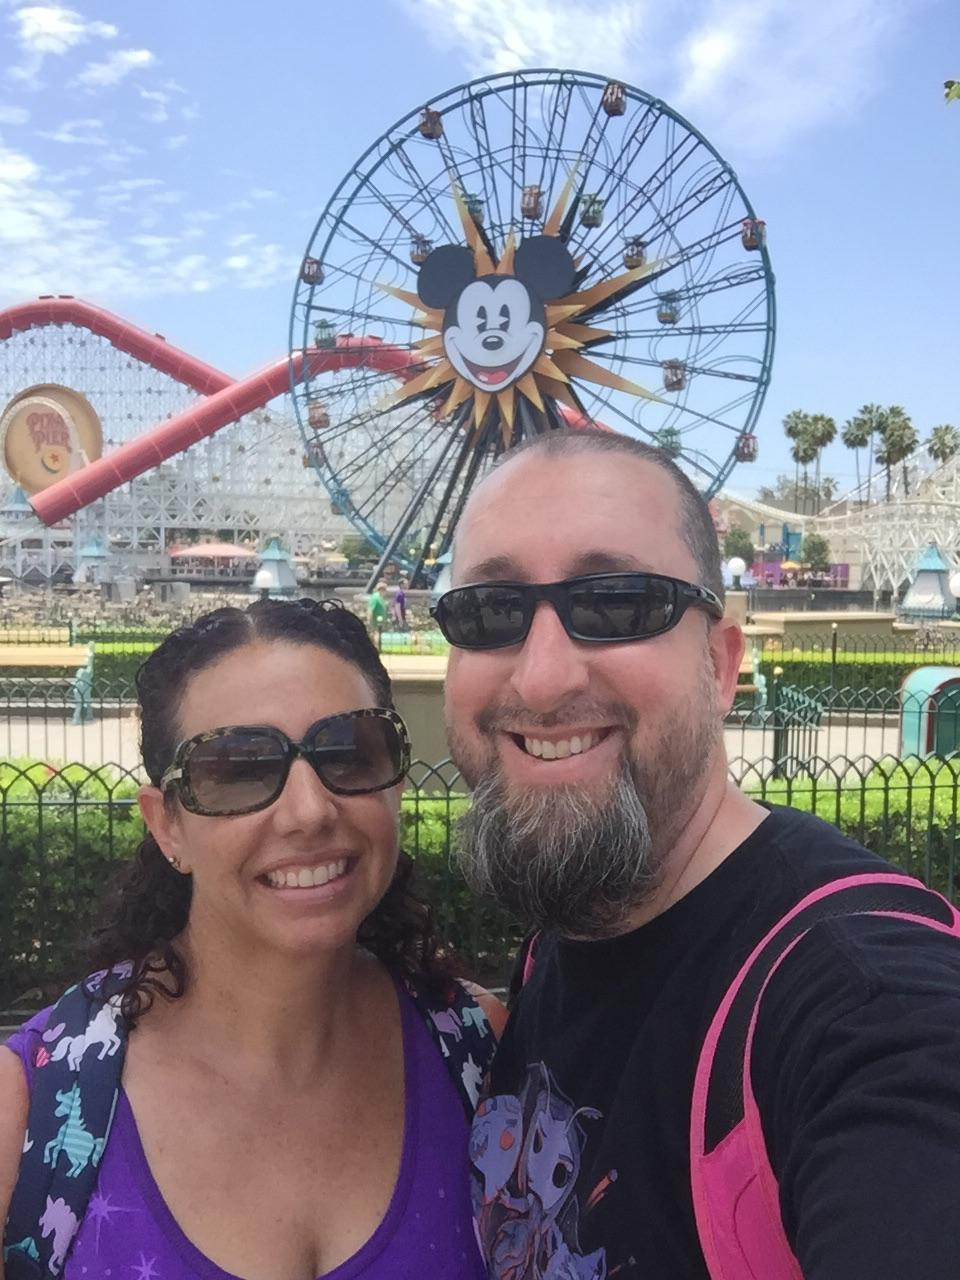 Mr. Barr and his wife selfie at Disneyland.